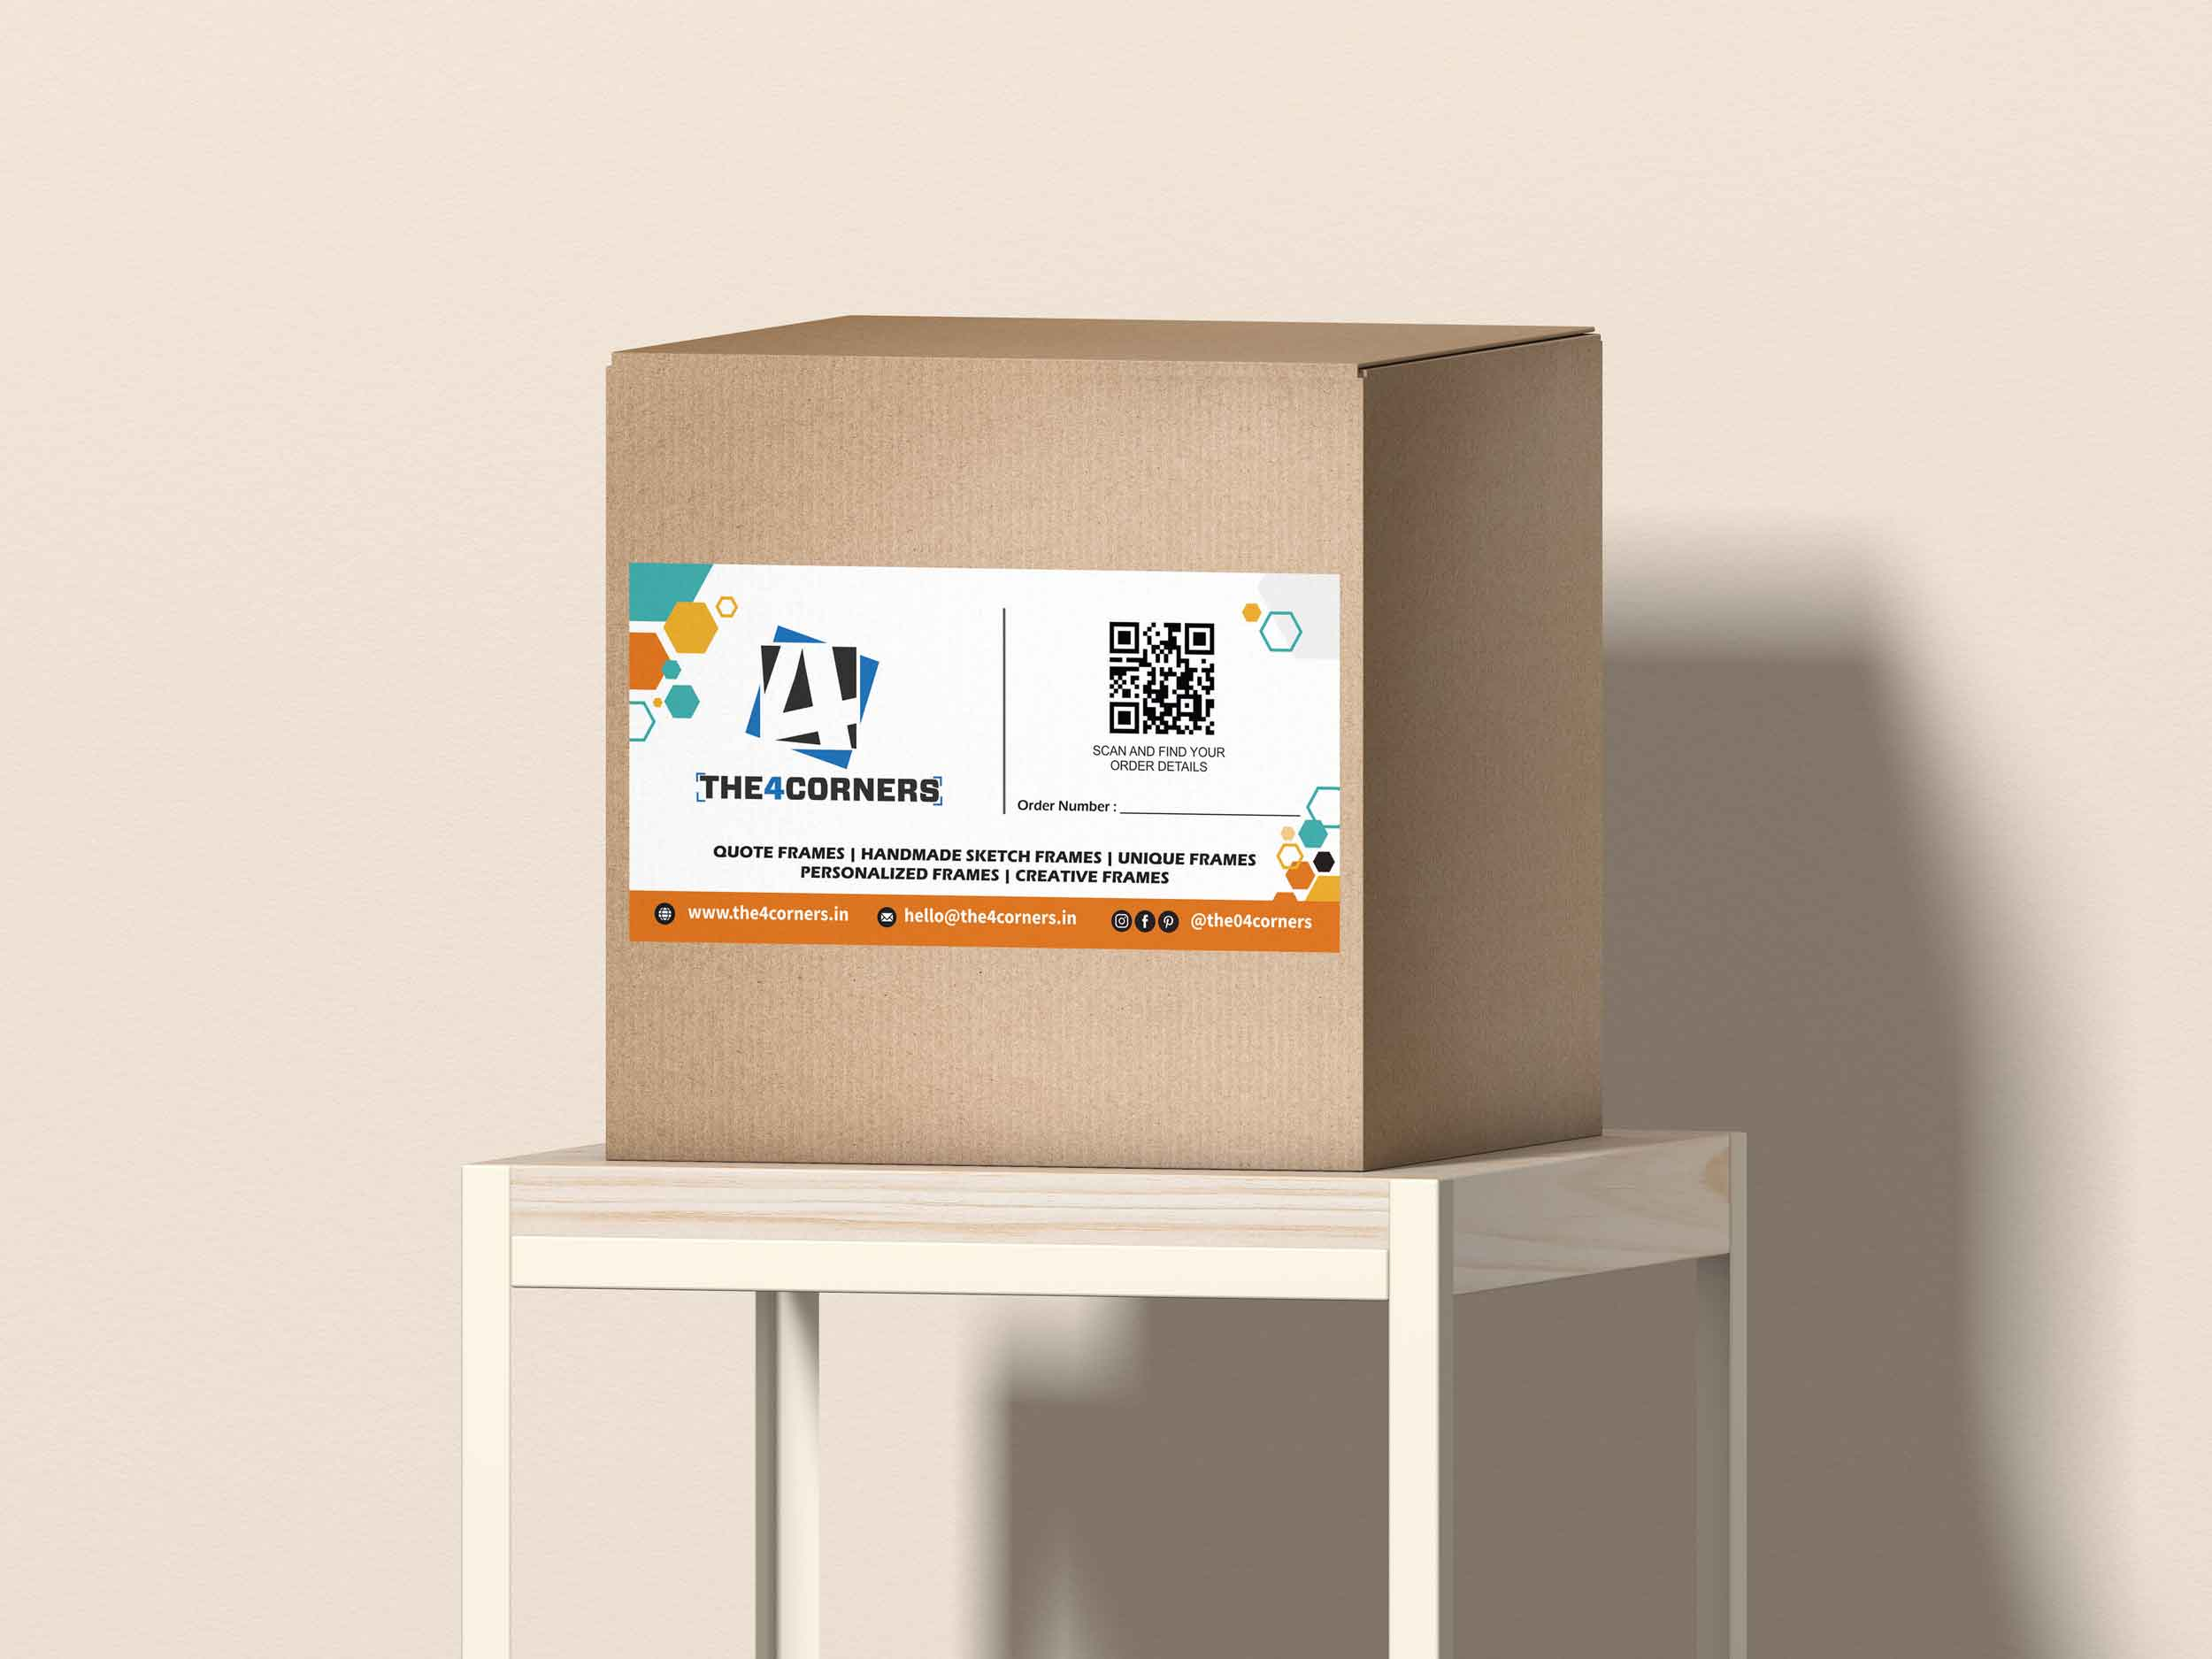 Sticker design for ecommerce store product label by Badri Design